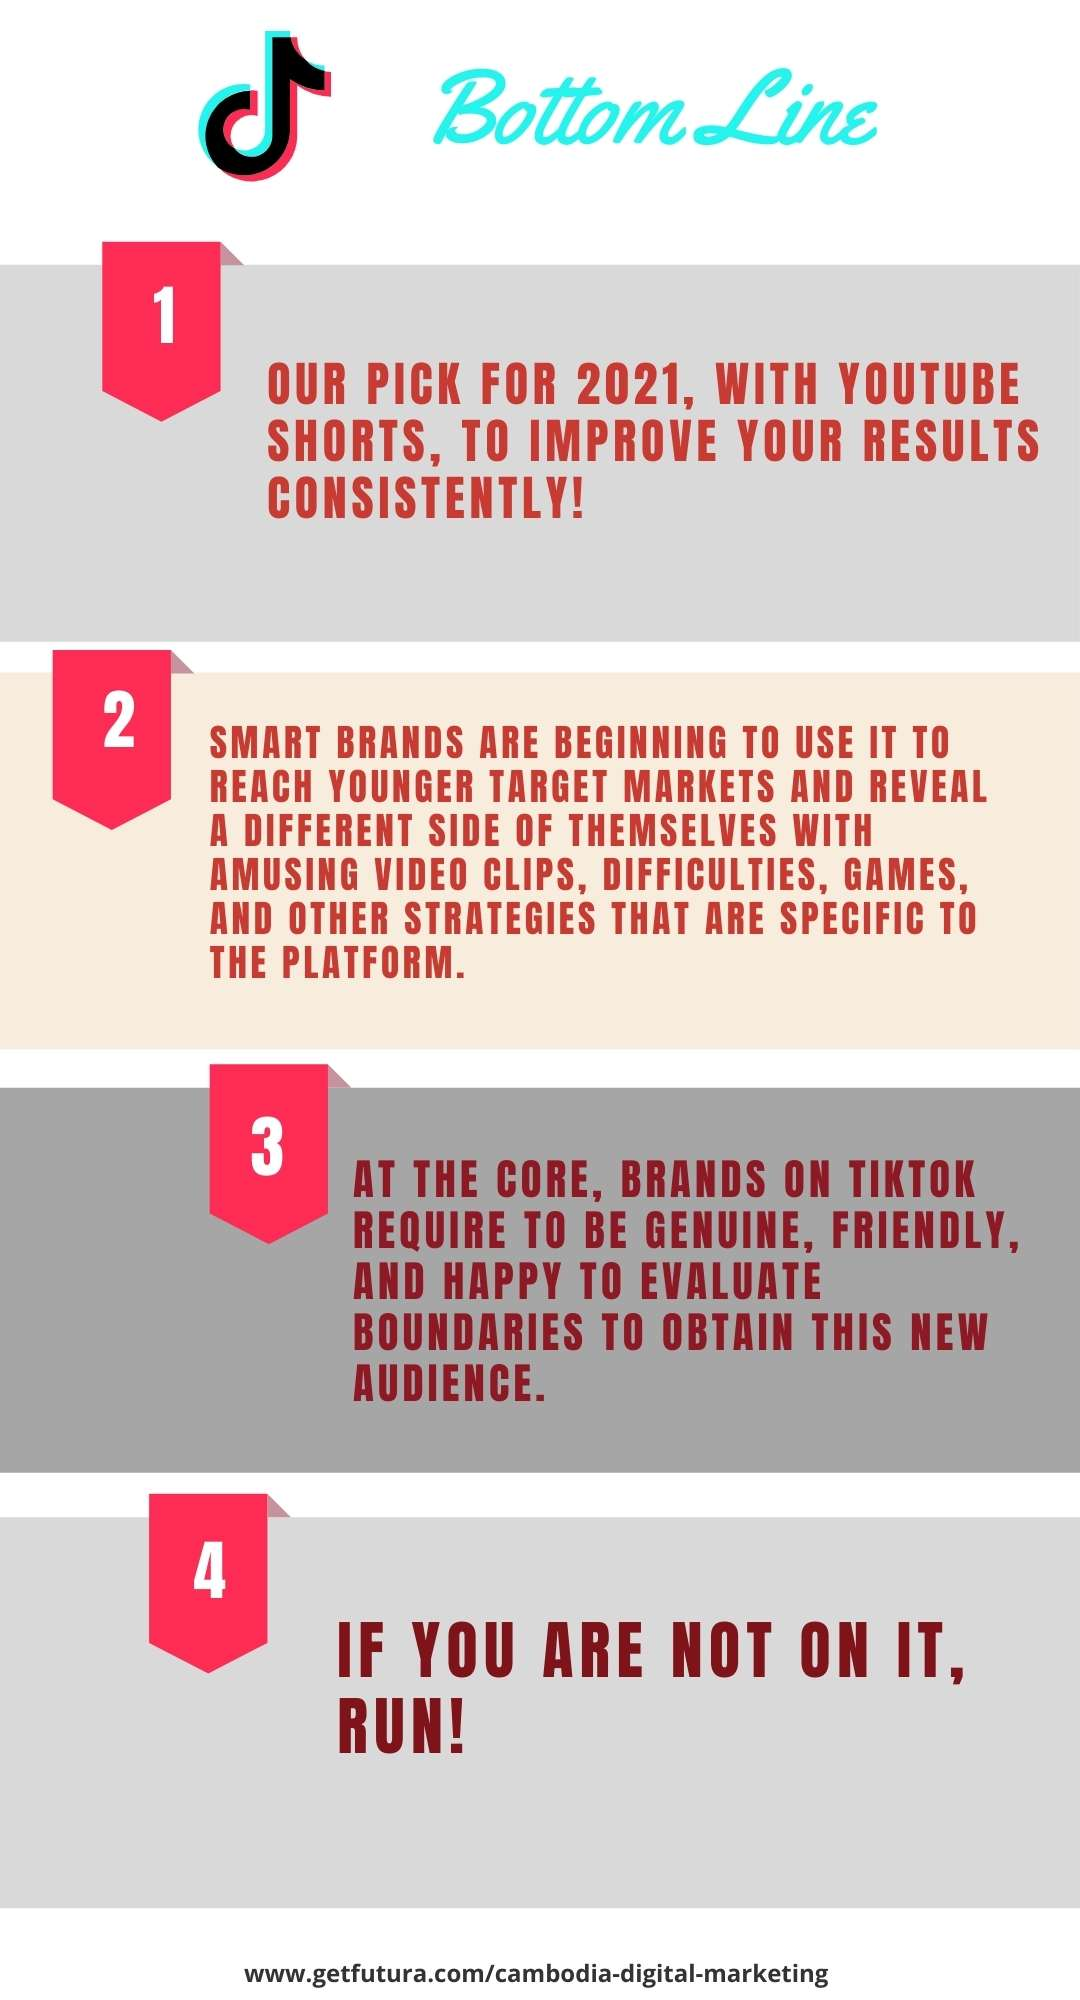 The bottom line Smart brands are beginning to use it to reach younger target markets and reveal a different side of themselves with amusing video clips, difficulties, games, and other strategies that are specific to the platform. At the core, brands on TikTok require to be genuine, friendly, and happy to evaluate boundaries to obtain this new audience.